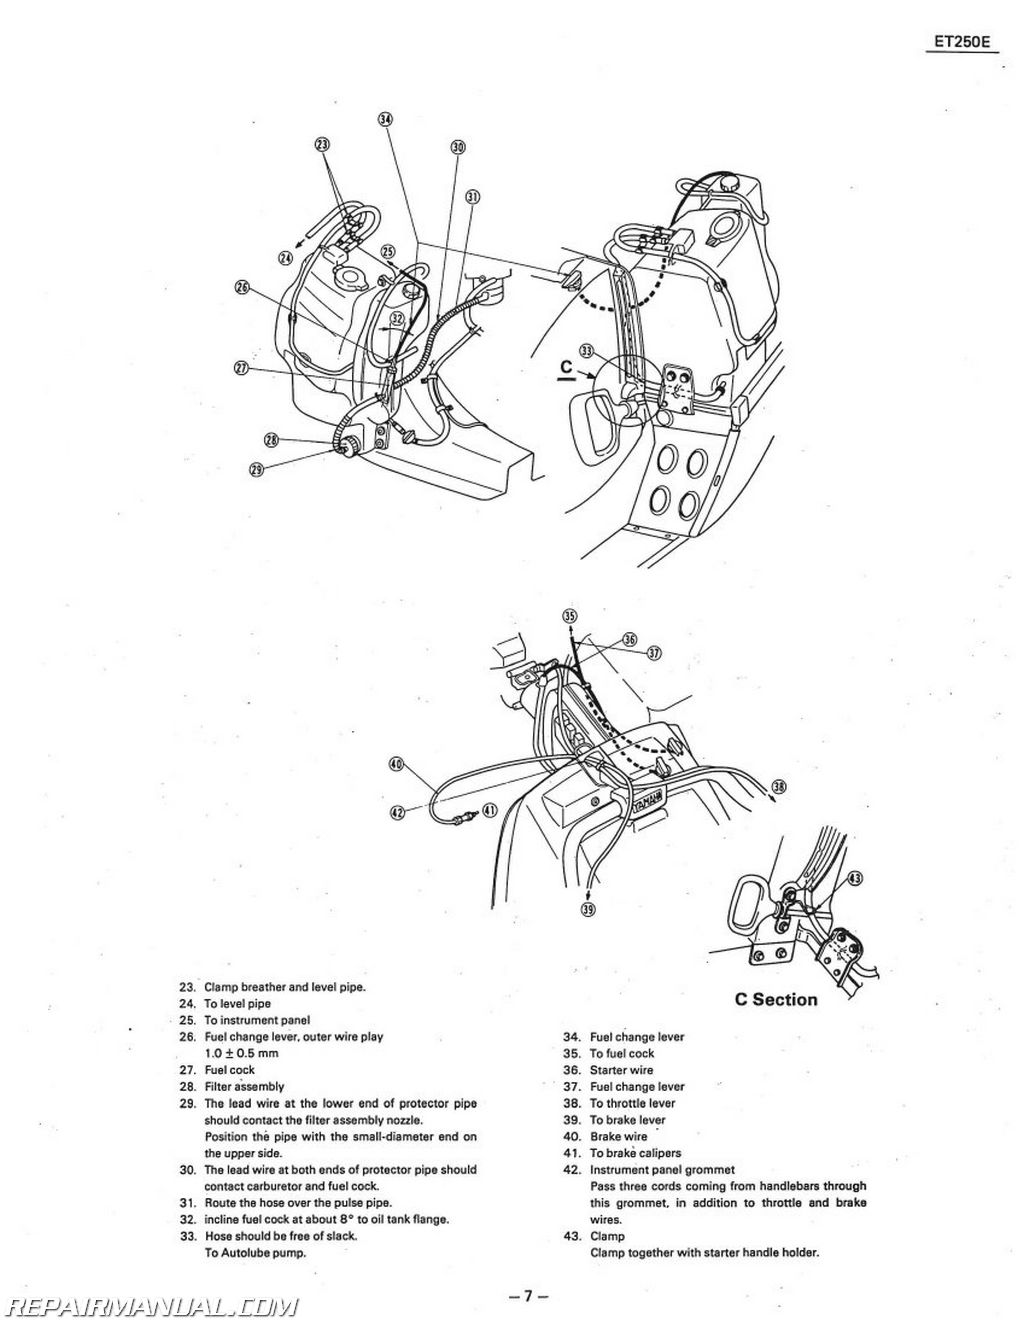 Yamaha Snowmobile Engine Diagrams Schematics Wiring Phazer Diagram Brake Light 1978 1981 Enticer Et250 Service Manual Rh Repairmanual Com Used Motors Oil